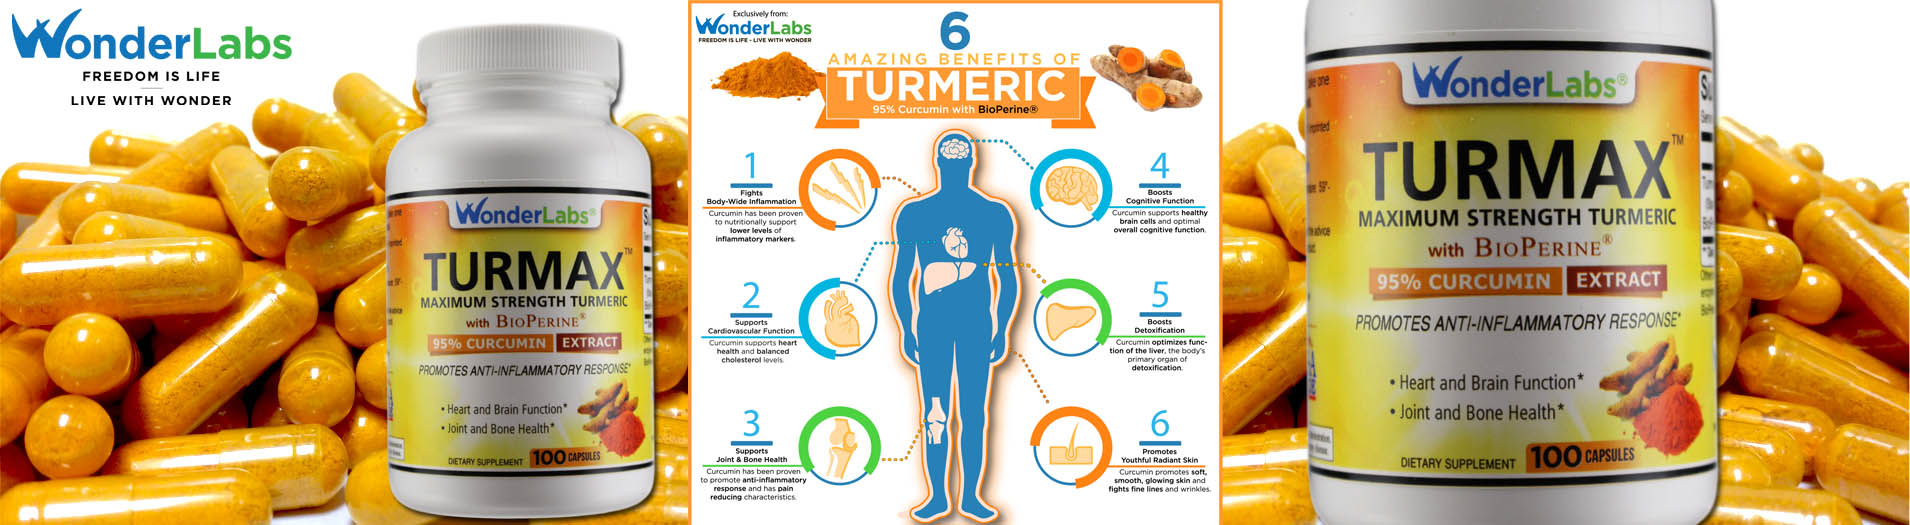 Turmax with Maximum Strength Turmeric